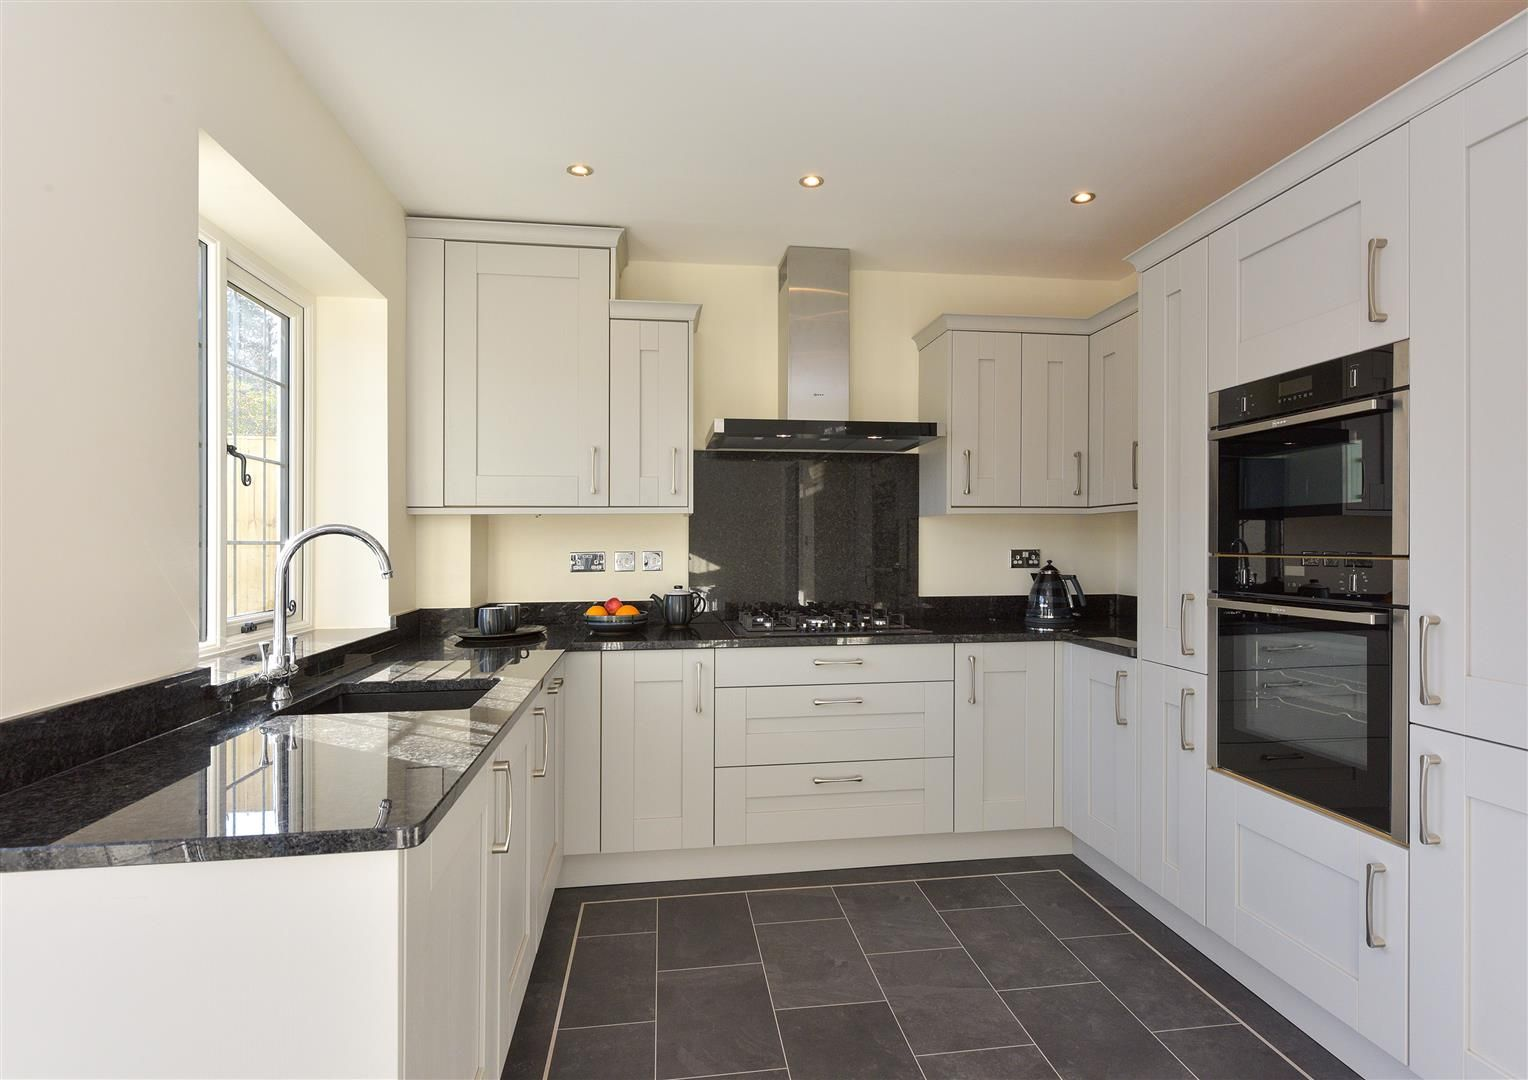 4 bed town-house for sale in Pedmore  - Property Image 3